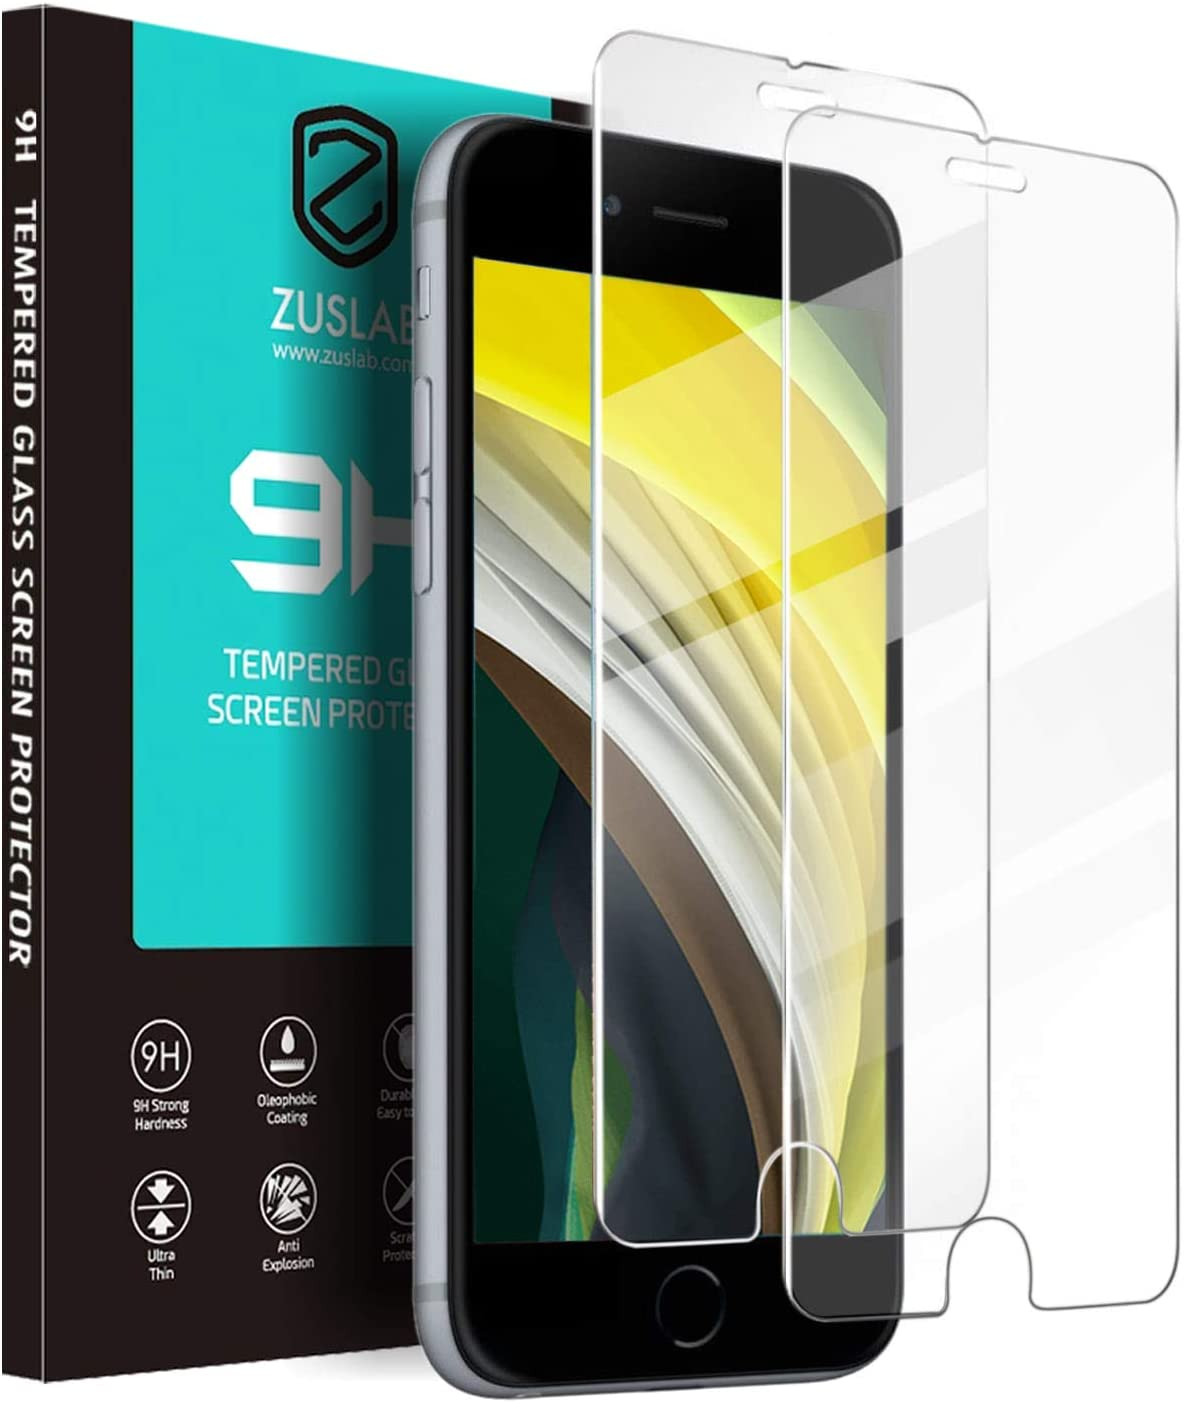 ZUSLAB for iPhone SE 2020 /iPhone 7/ iPhone 8 Screen Protector, Tempered Glass Screen Protector for iPhone 8/7, 2-Pack- Clear